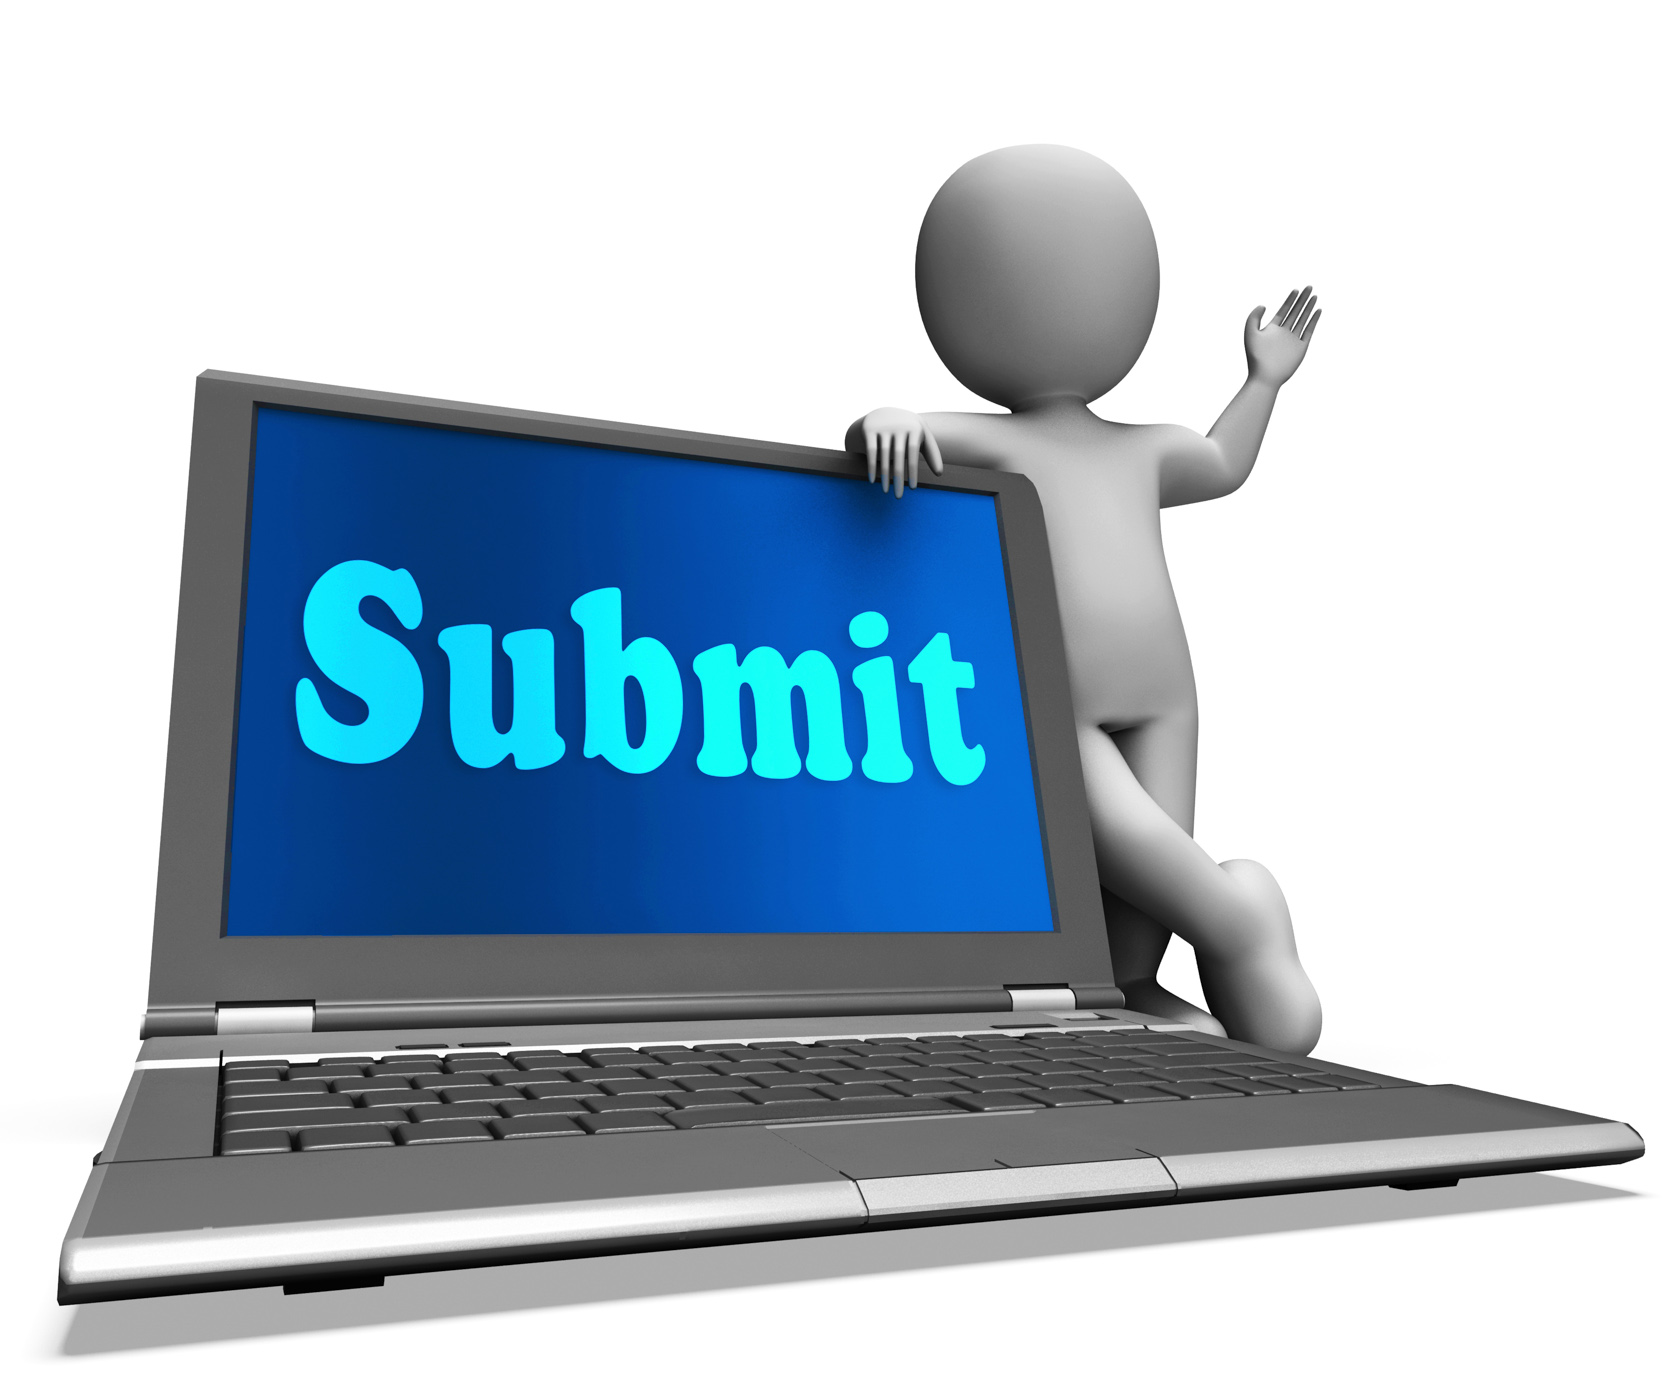 Submit laptop shows submitting submissions or applications photo